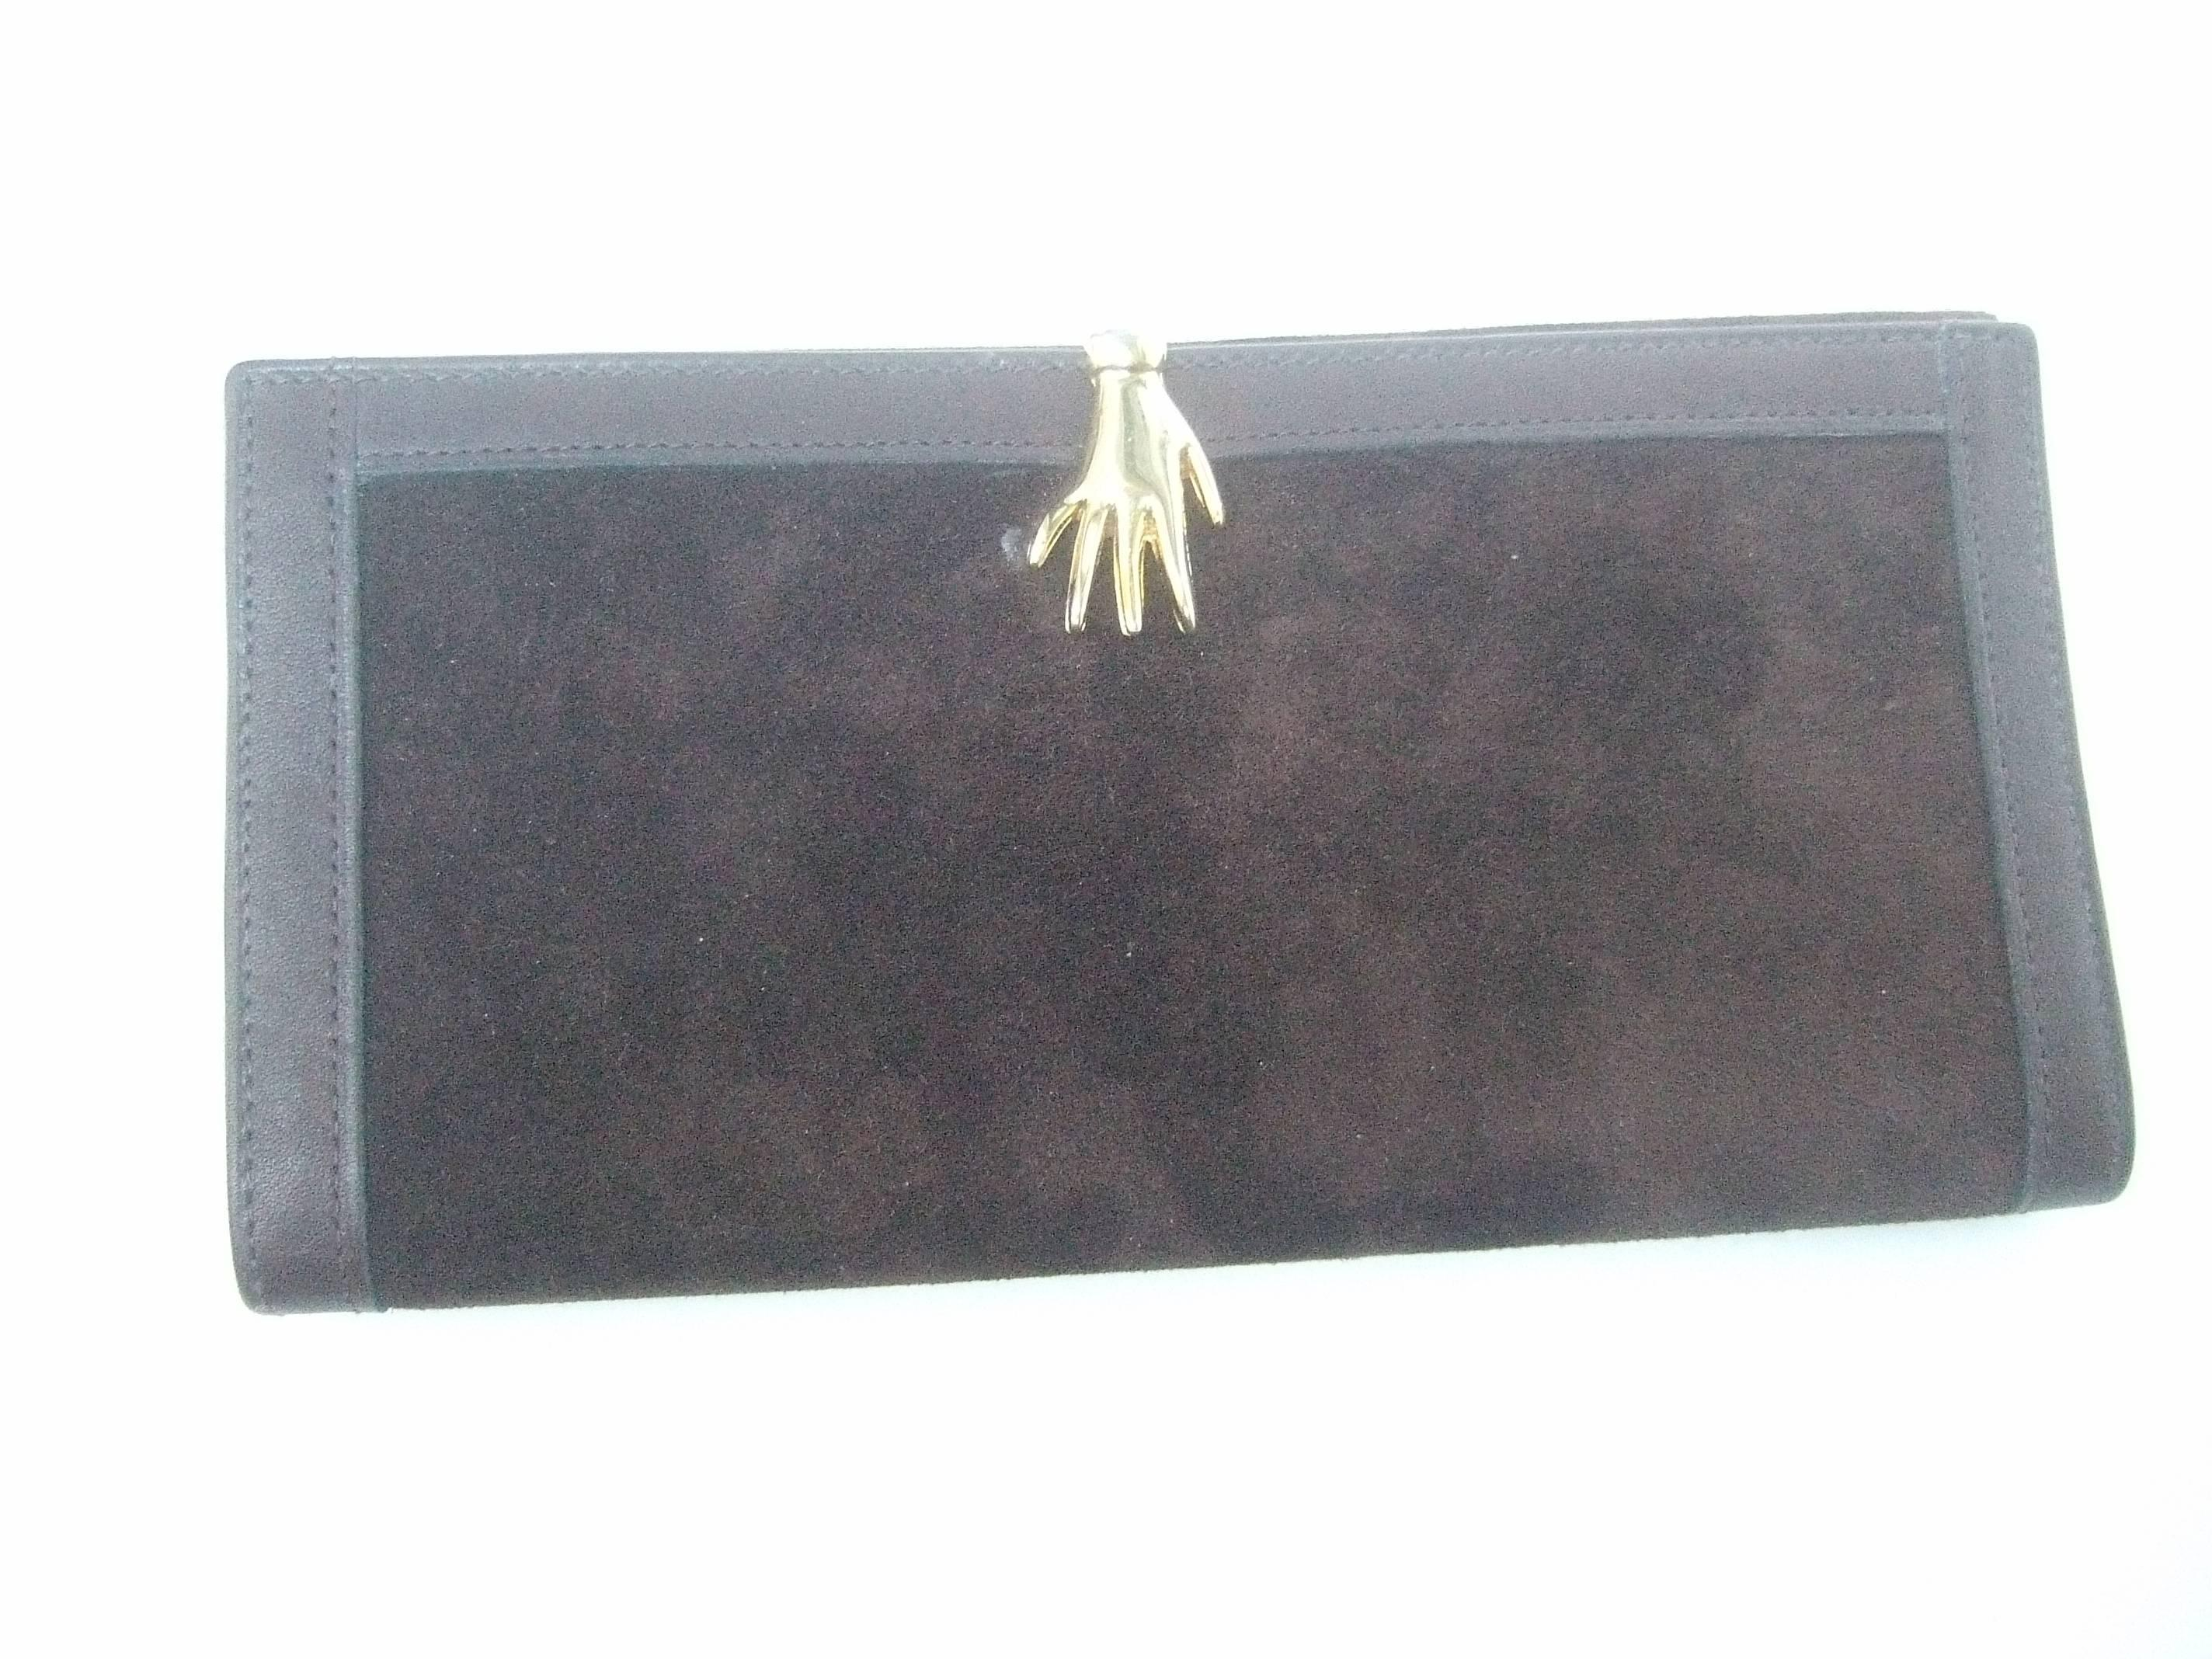 c53f5ed050ae16 Gucci Rare Chocolate Brown Suede Hand Clasp Wallet c 1970s at 1stdibs